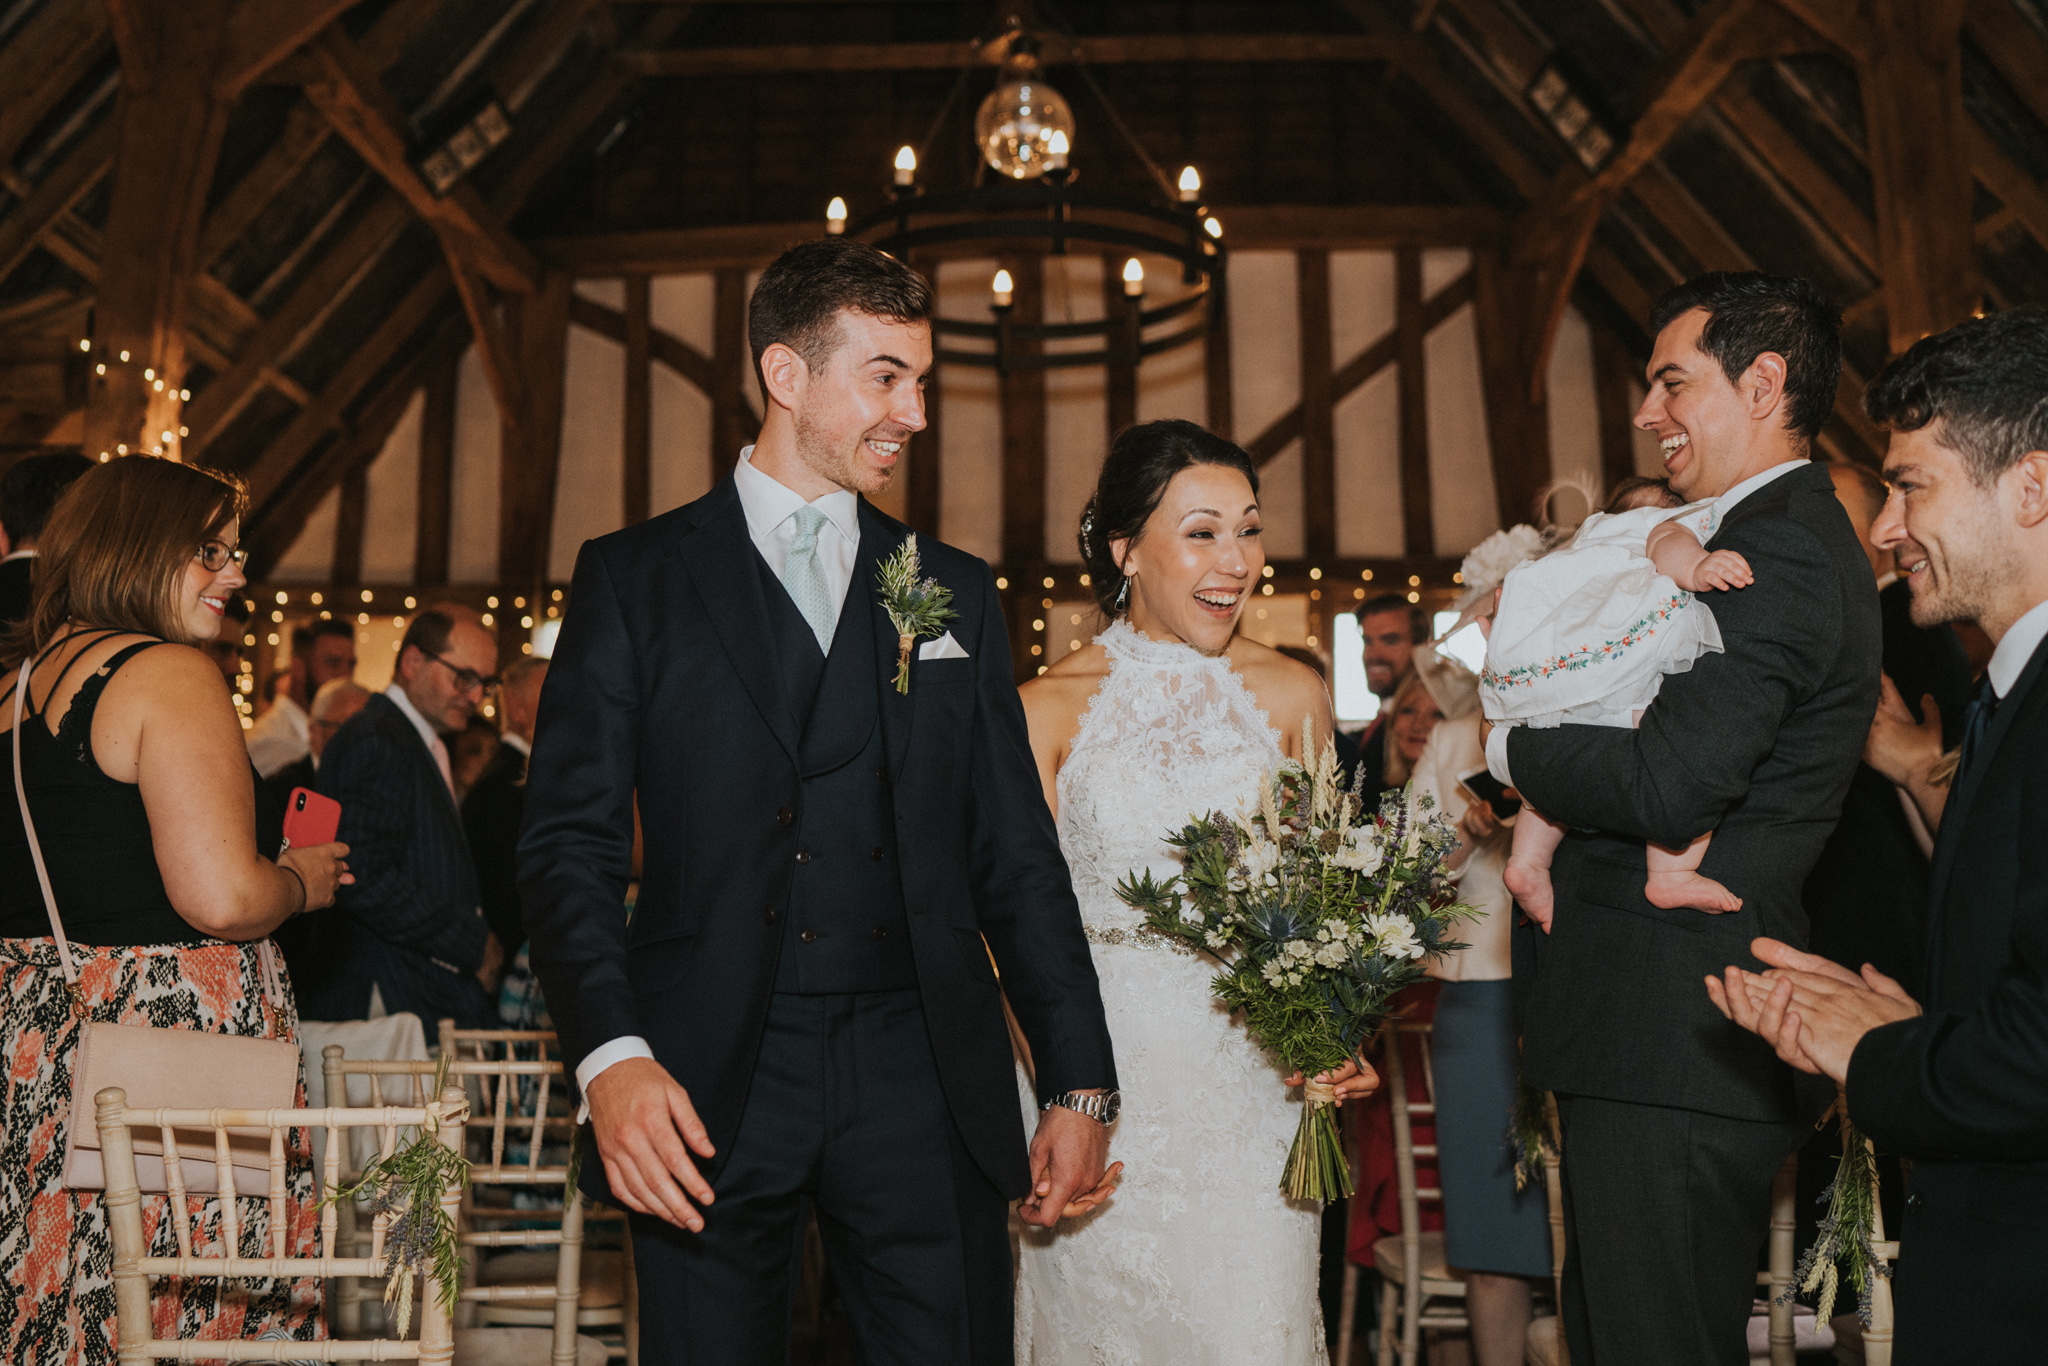 jane-patrick-smeetham-hall-barn-grace-elizabeth-colchester-essex-alternative-wedding-lifestyle-photographer-essex-suffolk-norfolk-devon (21 of 52).jpg